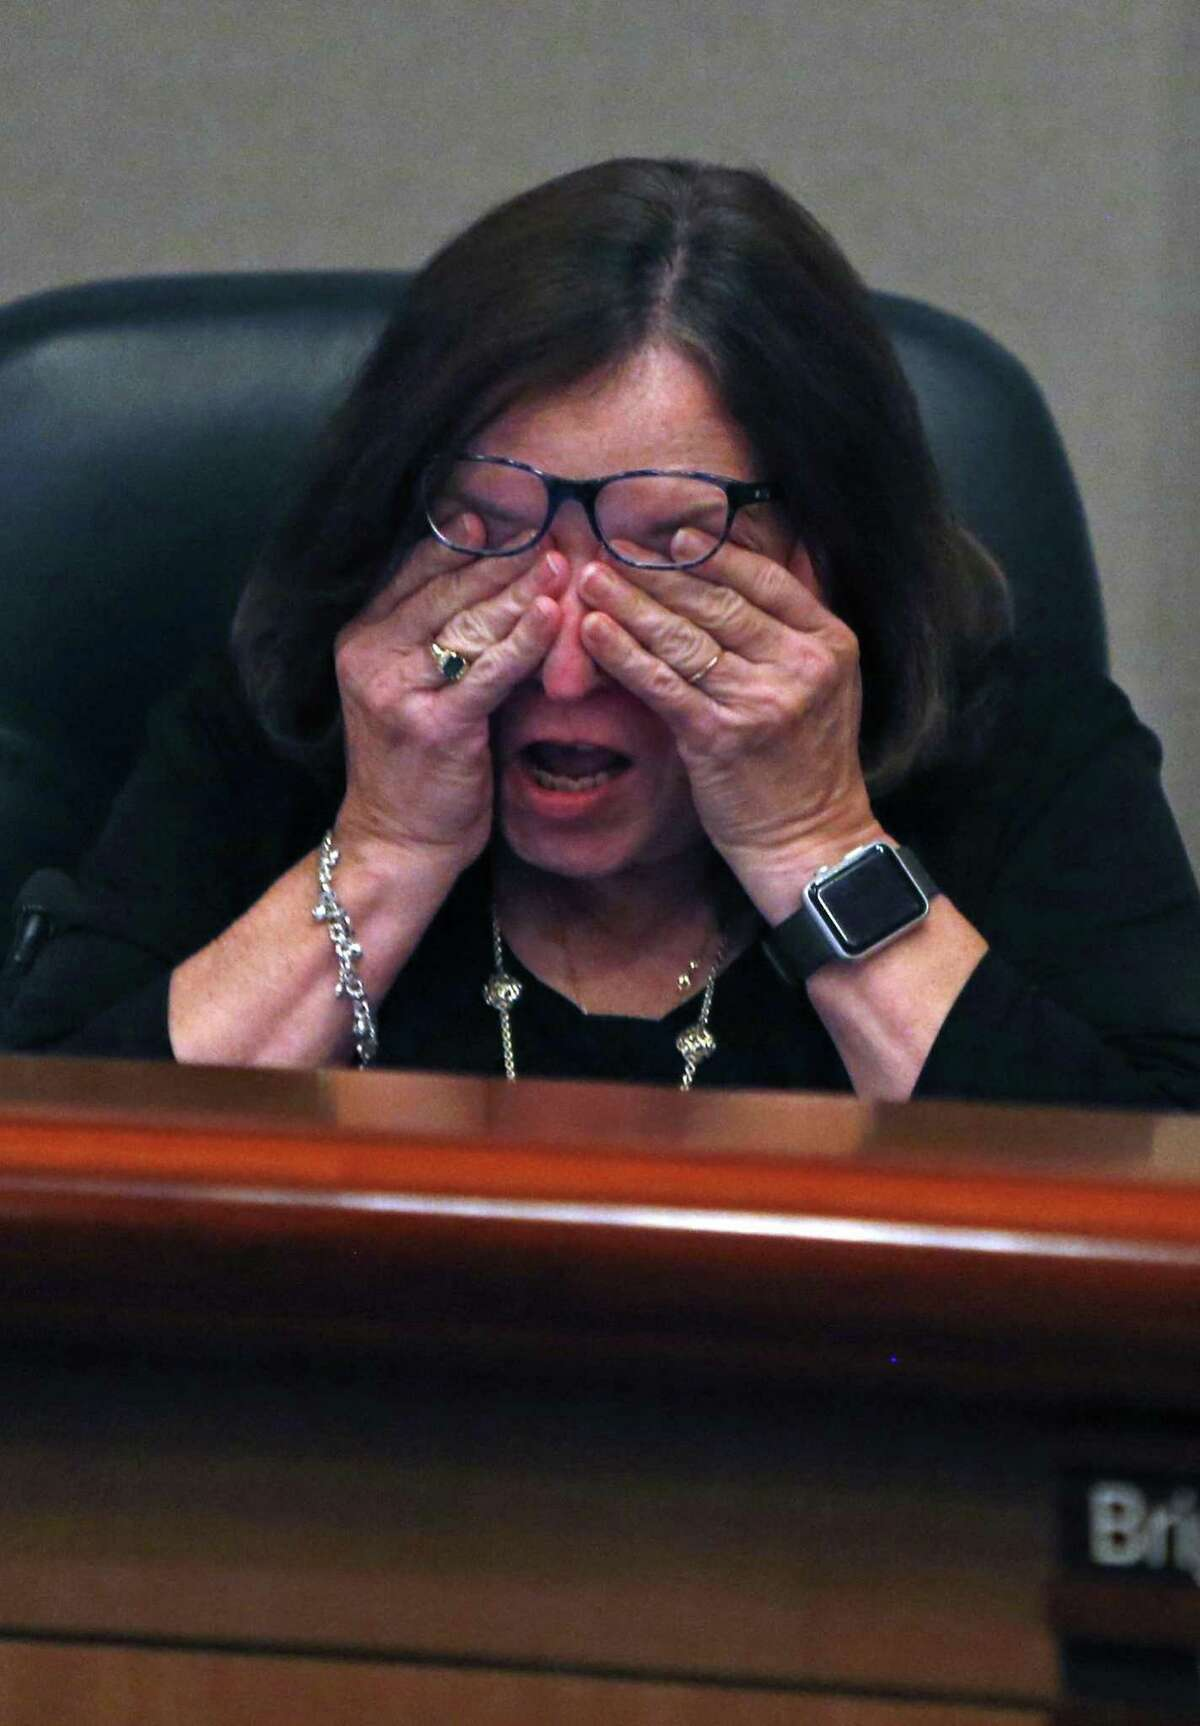 An emotional Sandy Hughey,L, after addressing the board on right is Brigitte Perkins. On Tuesday evening, the North East ISD board will vote on whether to change the name of Robert E. Lee High School in the wake of the events in Charlottesville and the national debate it started about Confederate monuments. at NEISD board room on Tuesday, August 29,2017